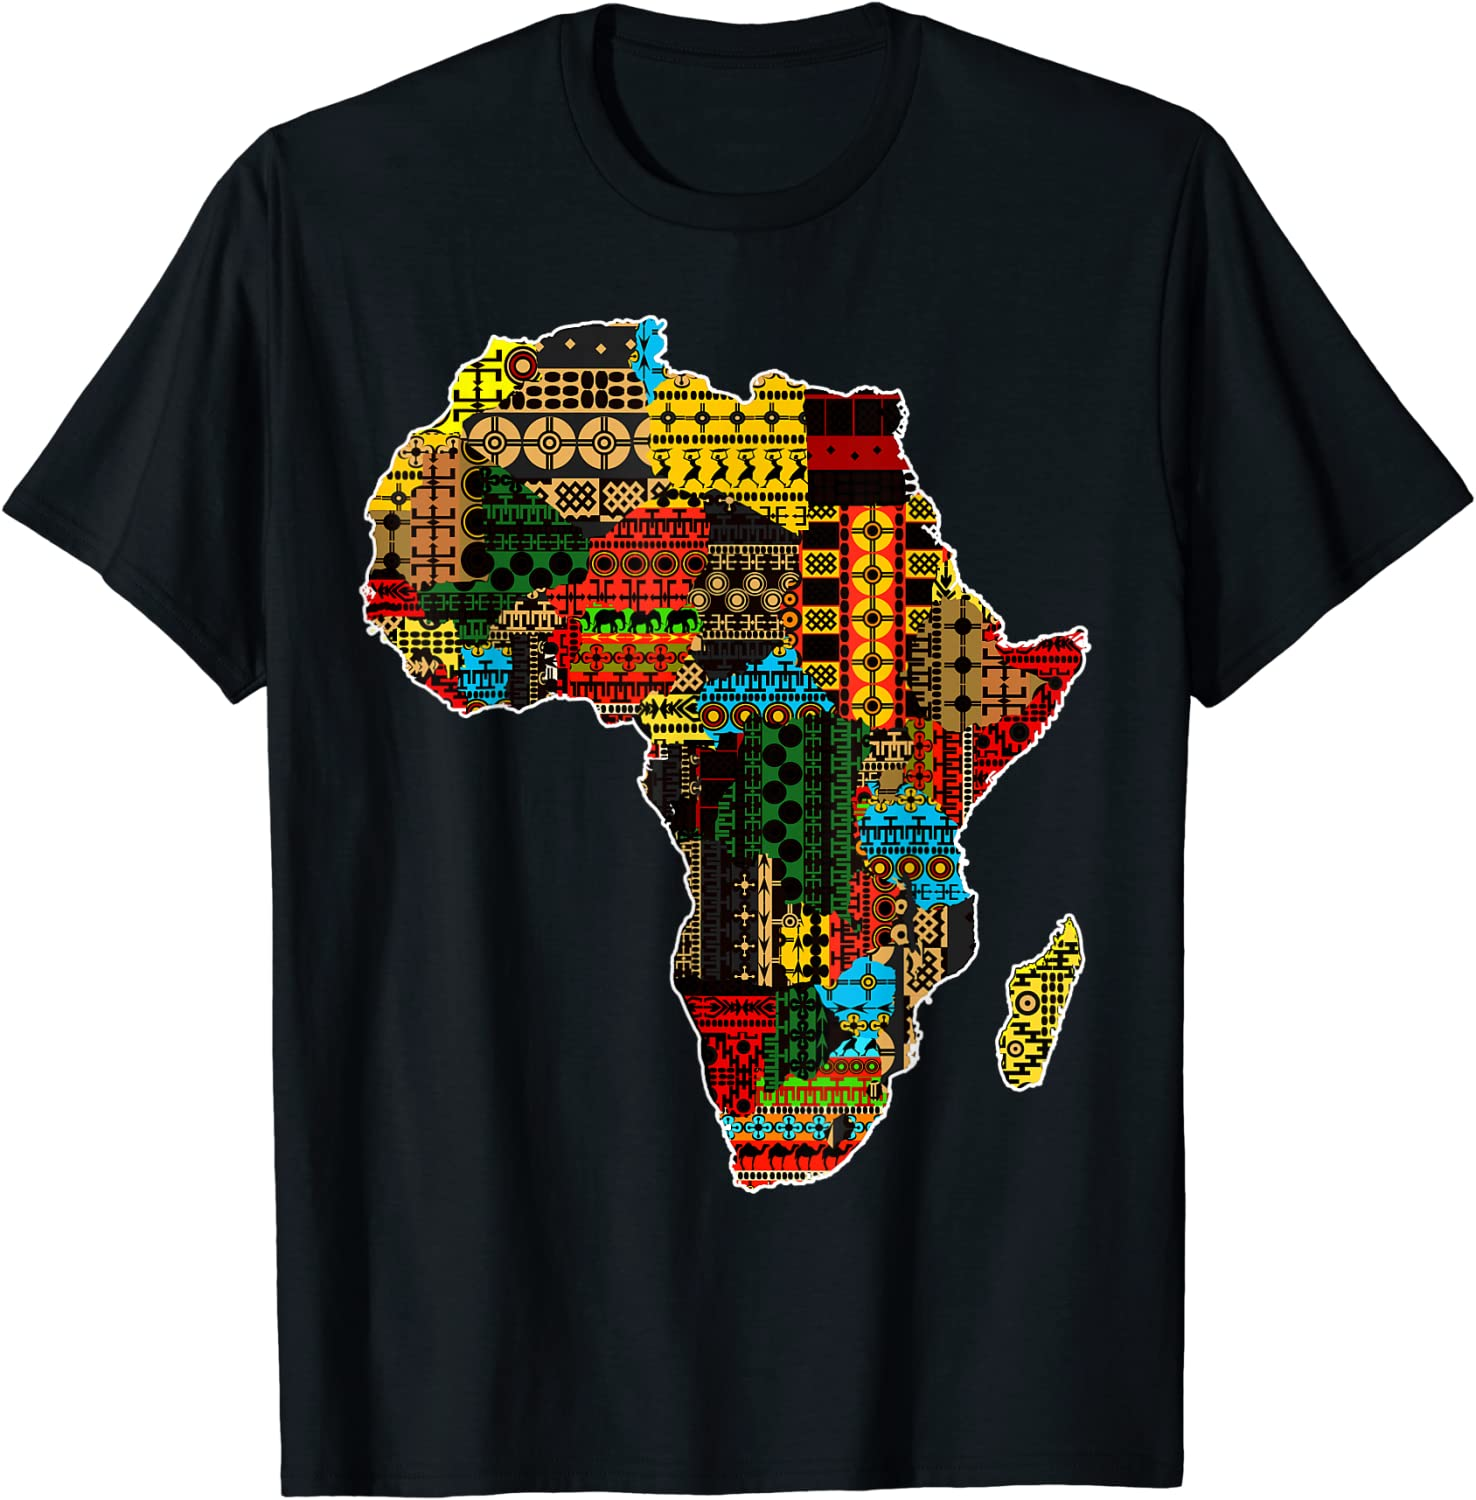 Africa Cotton Top Africa Print Top Africa Blouse Africa Colorful Top,Africa Fabric Top,Tribal Top,Ethnic Top,Tribal Print Top Africa Top